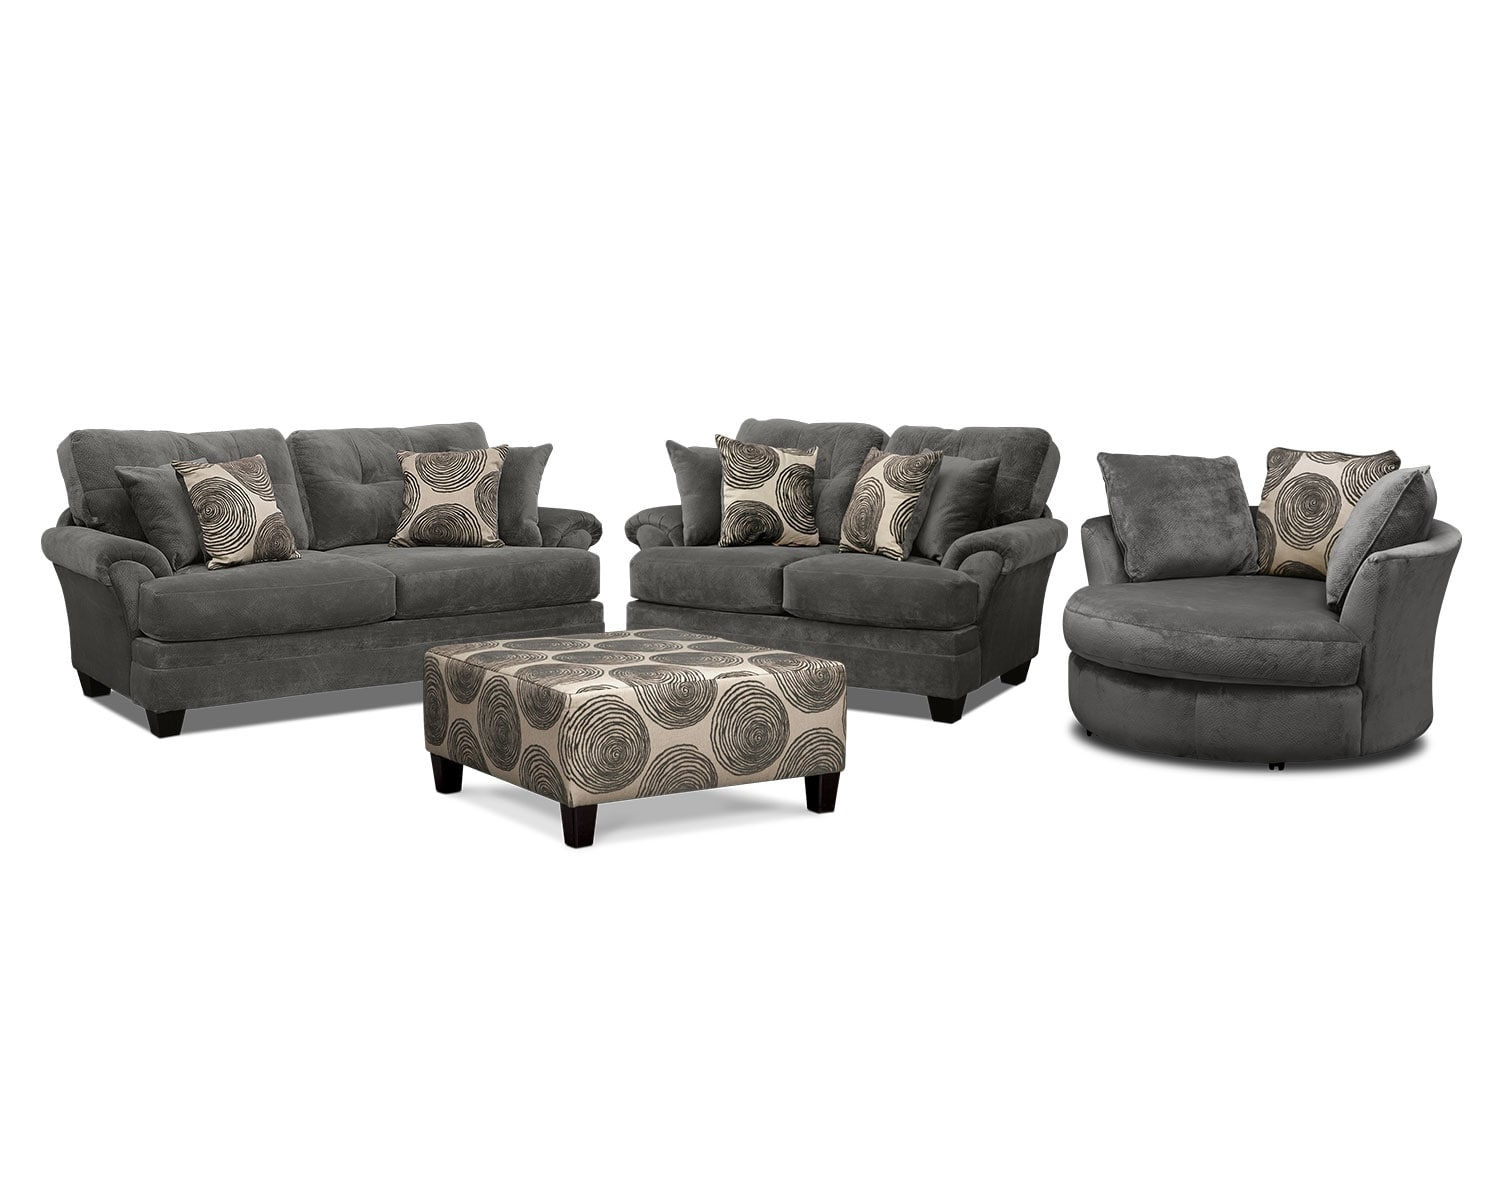 The Cordelle Living Room Collection - Gray